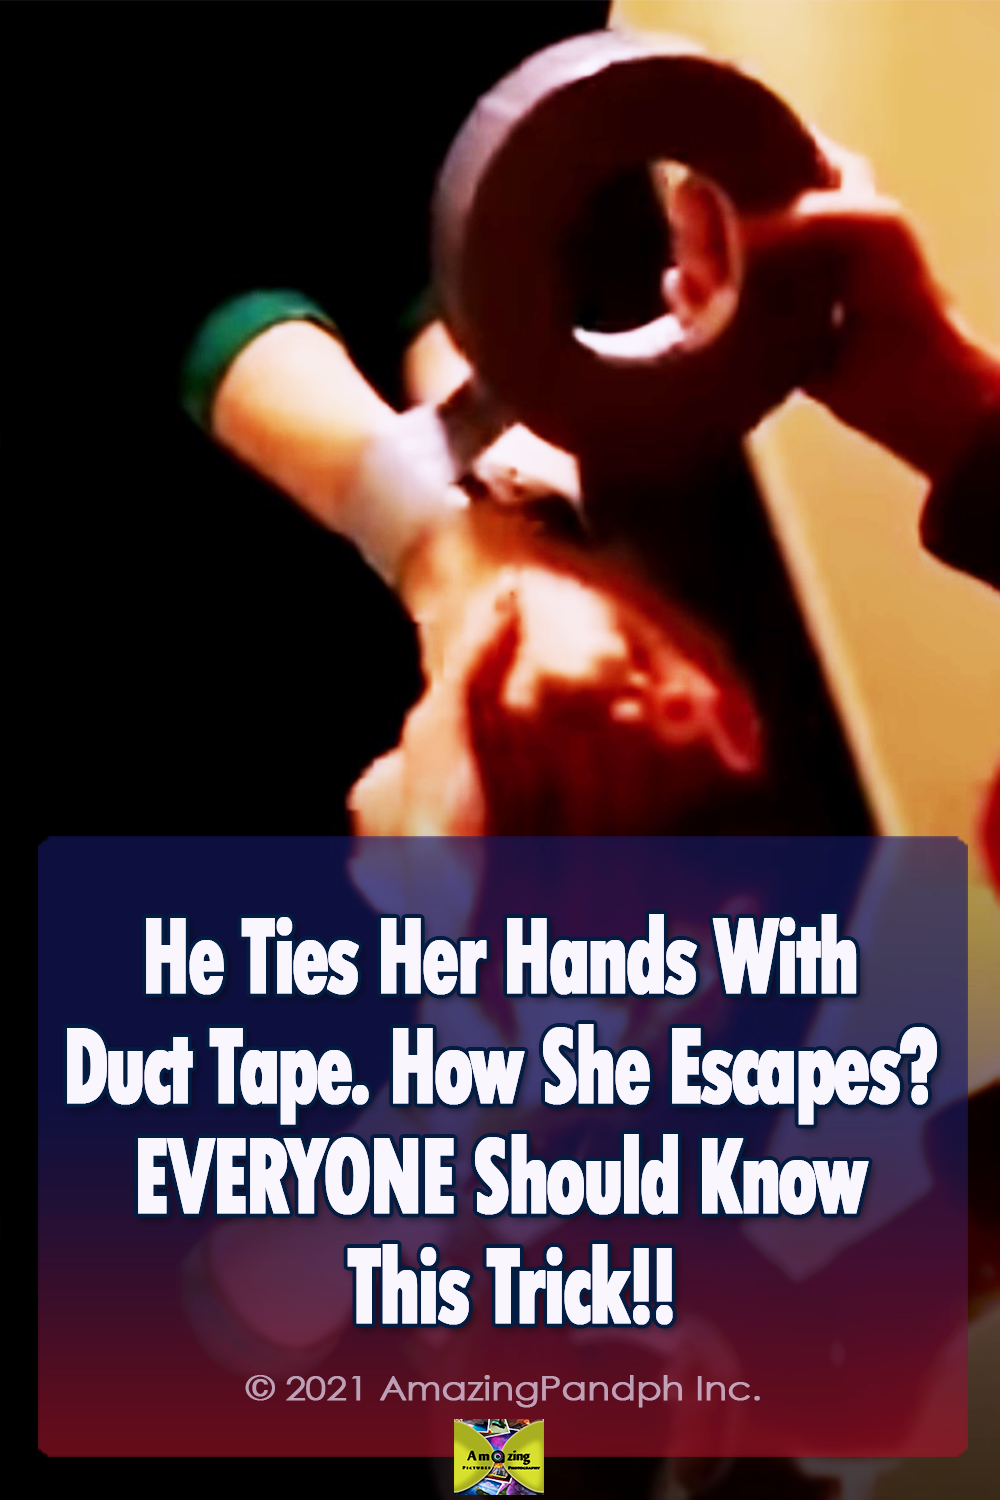 Duct tape, smart, tips, life tips, how to escape, tied hard, kidnapped,